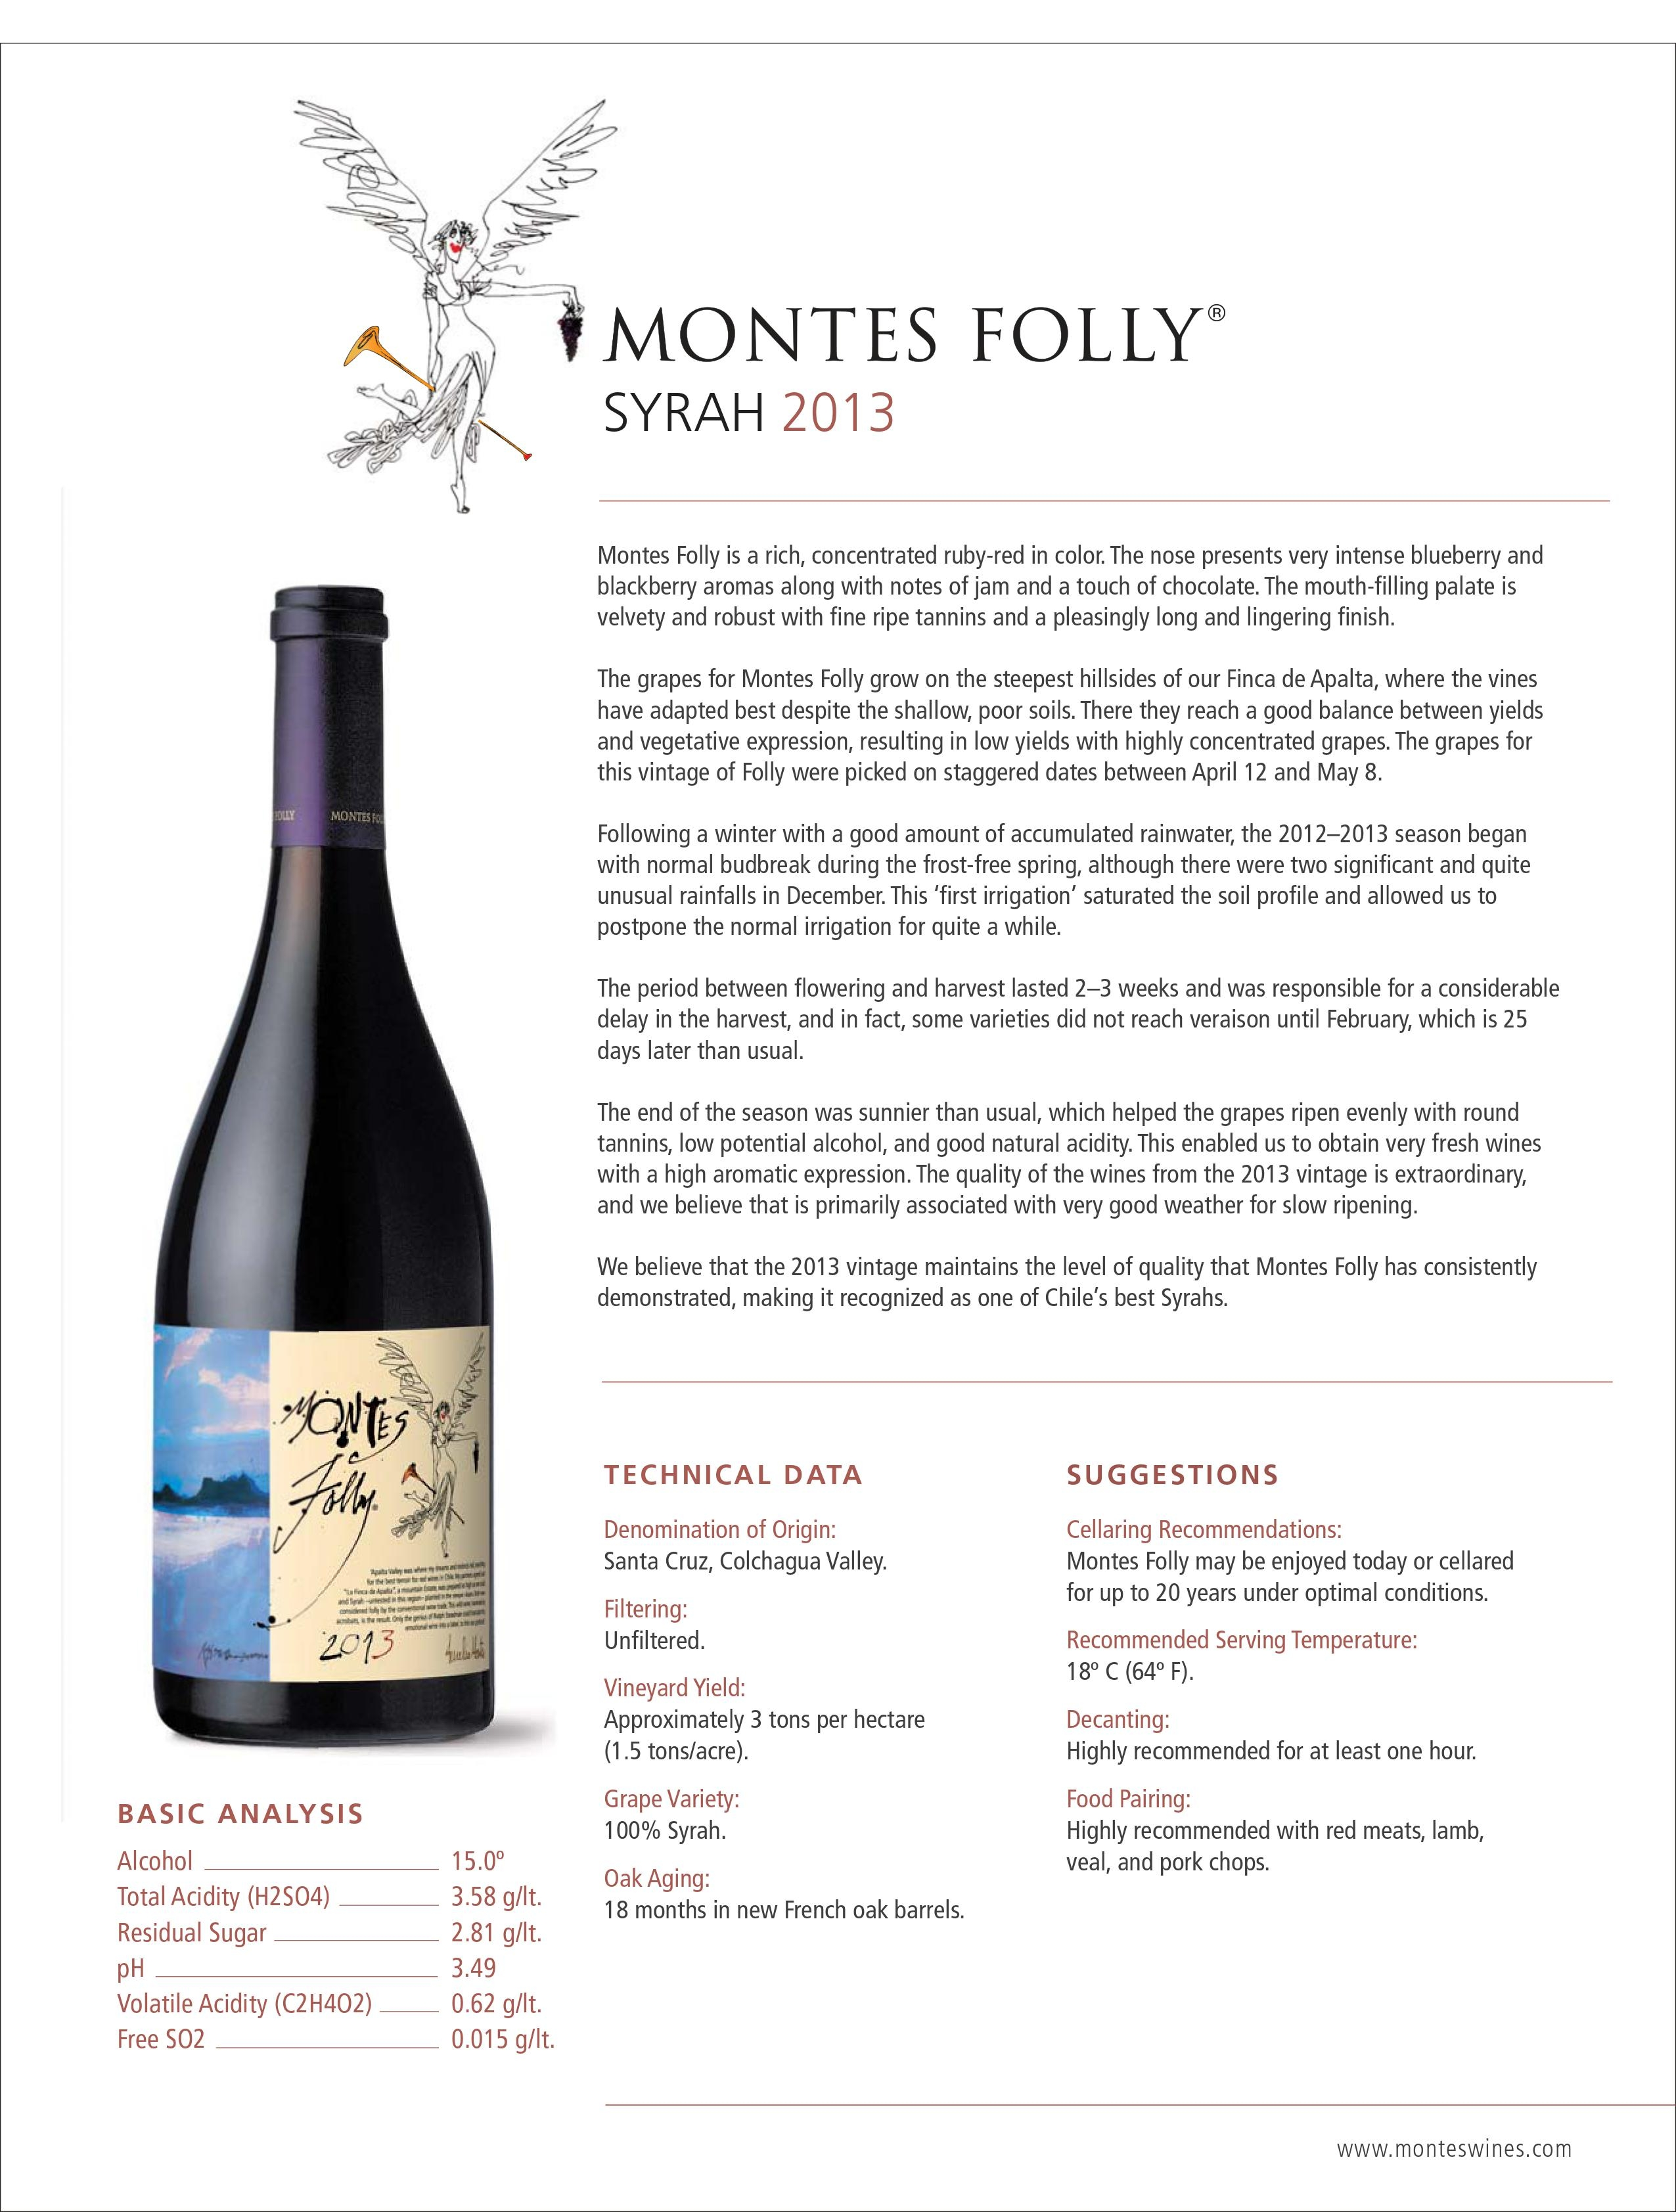 Montes Folly is a rich, concentrated ruby-red in color. The nose presents very intense blueberry and blackberry aromas along with notes of jam and a touch of chocolate. The mouth-filling palate is velvety and robust with fine ripe tannins and a pleasingly long and lingering finish. The grapes for Montes Folly grow on the steepest hillsides of our Finca de Apalta, where the vines have adapted best despite the shallow, poor soils. There they reach a good balance between yields and vegetative expression, resulting in low yields with highly concentrated grapes. The grapes for this vintage of Folly were picked on staggered dates between April 12 and May 8. Following a winter with a good amount of accumulated rainwater, the 2012–2013 season began with normal budbreak during the frost-free spring, although there were two significant and quite unusual rainfalls in December. This 'first irrigation' saturated the soil profile and allowed us to postpone the normal irrigation for quite a while. The period between flowering and harvest lasted 2–3 weeks and was responsible for a considerable delay in the harvest, and in fact, some varieties did not reach veraison until February, which is 25 days later than usual. The end of the season was sunnier than usual, which helped the grapes ripen evenly with round tannins, low potential alcohol, and good natural acidity. This enabled us to obtain very fresh wines with a high aromatic expression. The quality of the wines from the 2013 vintage is extraordinary, and we believe that is primarily associated with very good weather for slow ripening. We believe that the 2013 vintage maintains the level of quality that Montes Folly has consistently demonstrated, making it recognized as one of Chile's best Syrahs. BASIC ANALYSIS Alcohol 15.0º Total Acidity (H2SO4) 3.58 g/lt. Residual Sugar 2.81 g/lt. pH 3.49 Volatile Acidity (C2H4O2) 0.62 g/lt. Free SO2 0.015 g/lt. SUGGESTIONS Cellaring Recommendations: Montes Folly may be enjoyed today or cellare